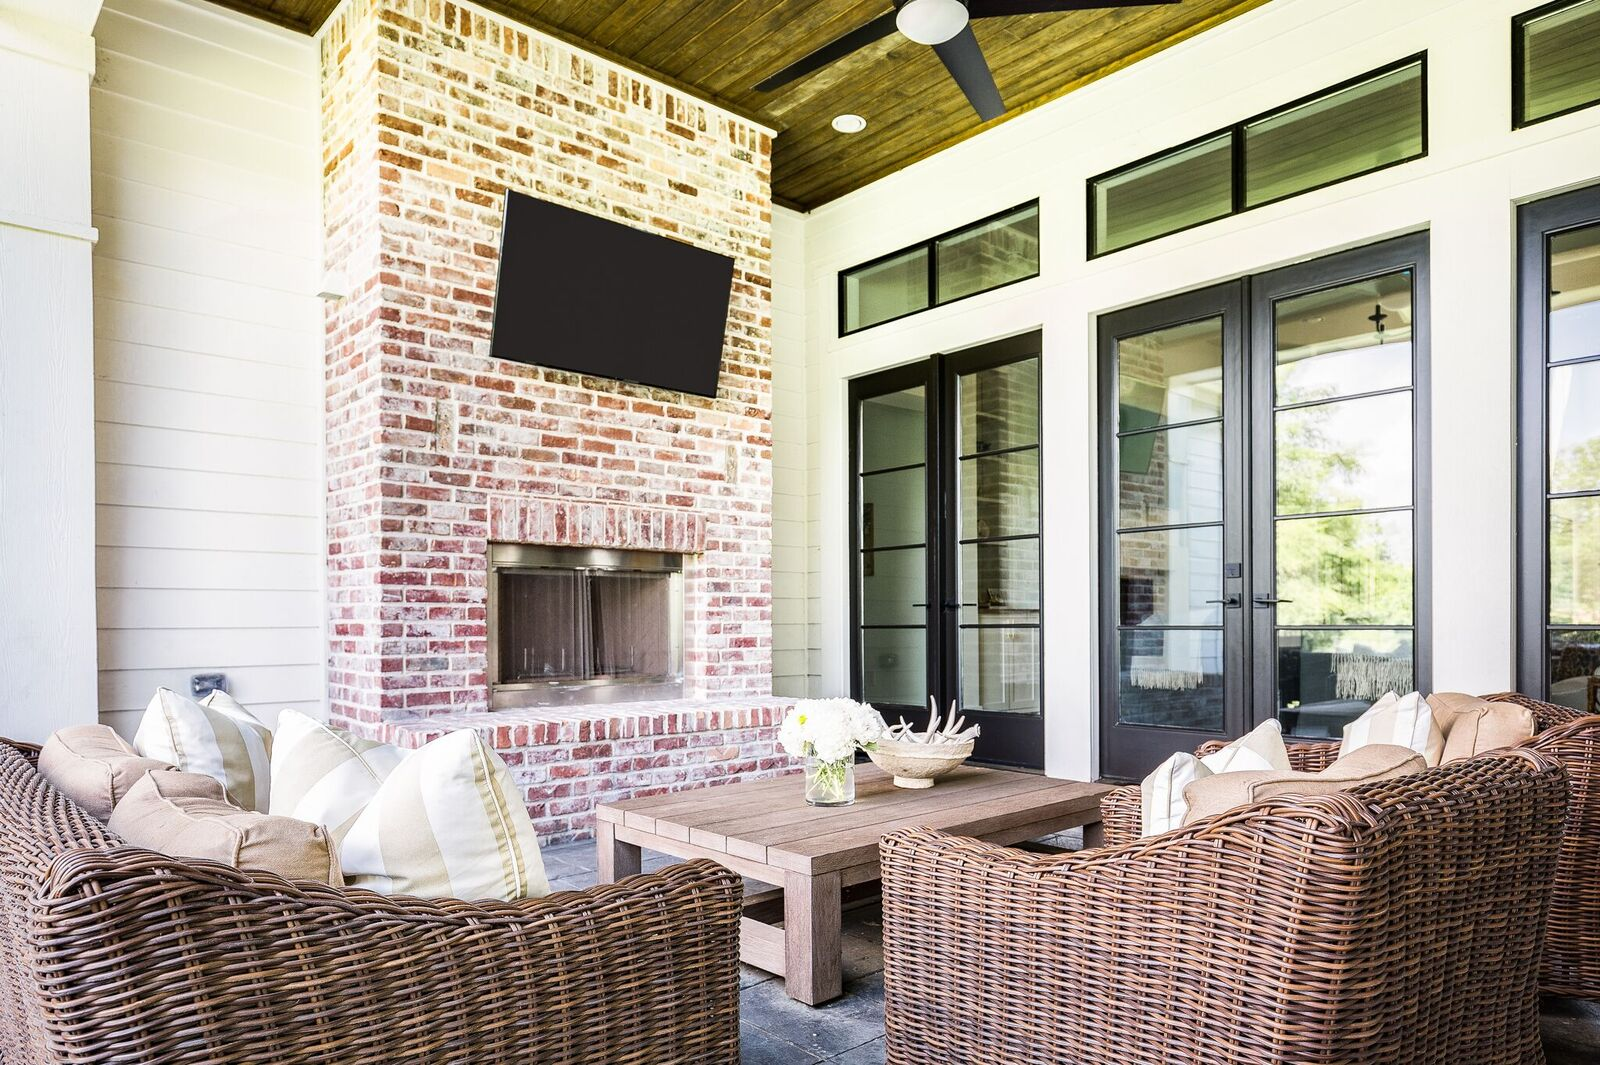 Come see this waterfront modern farmhouse featuring a covered patio over an outdoor living room.